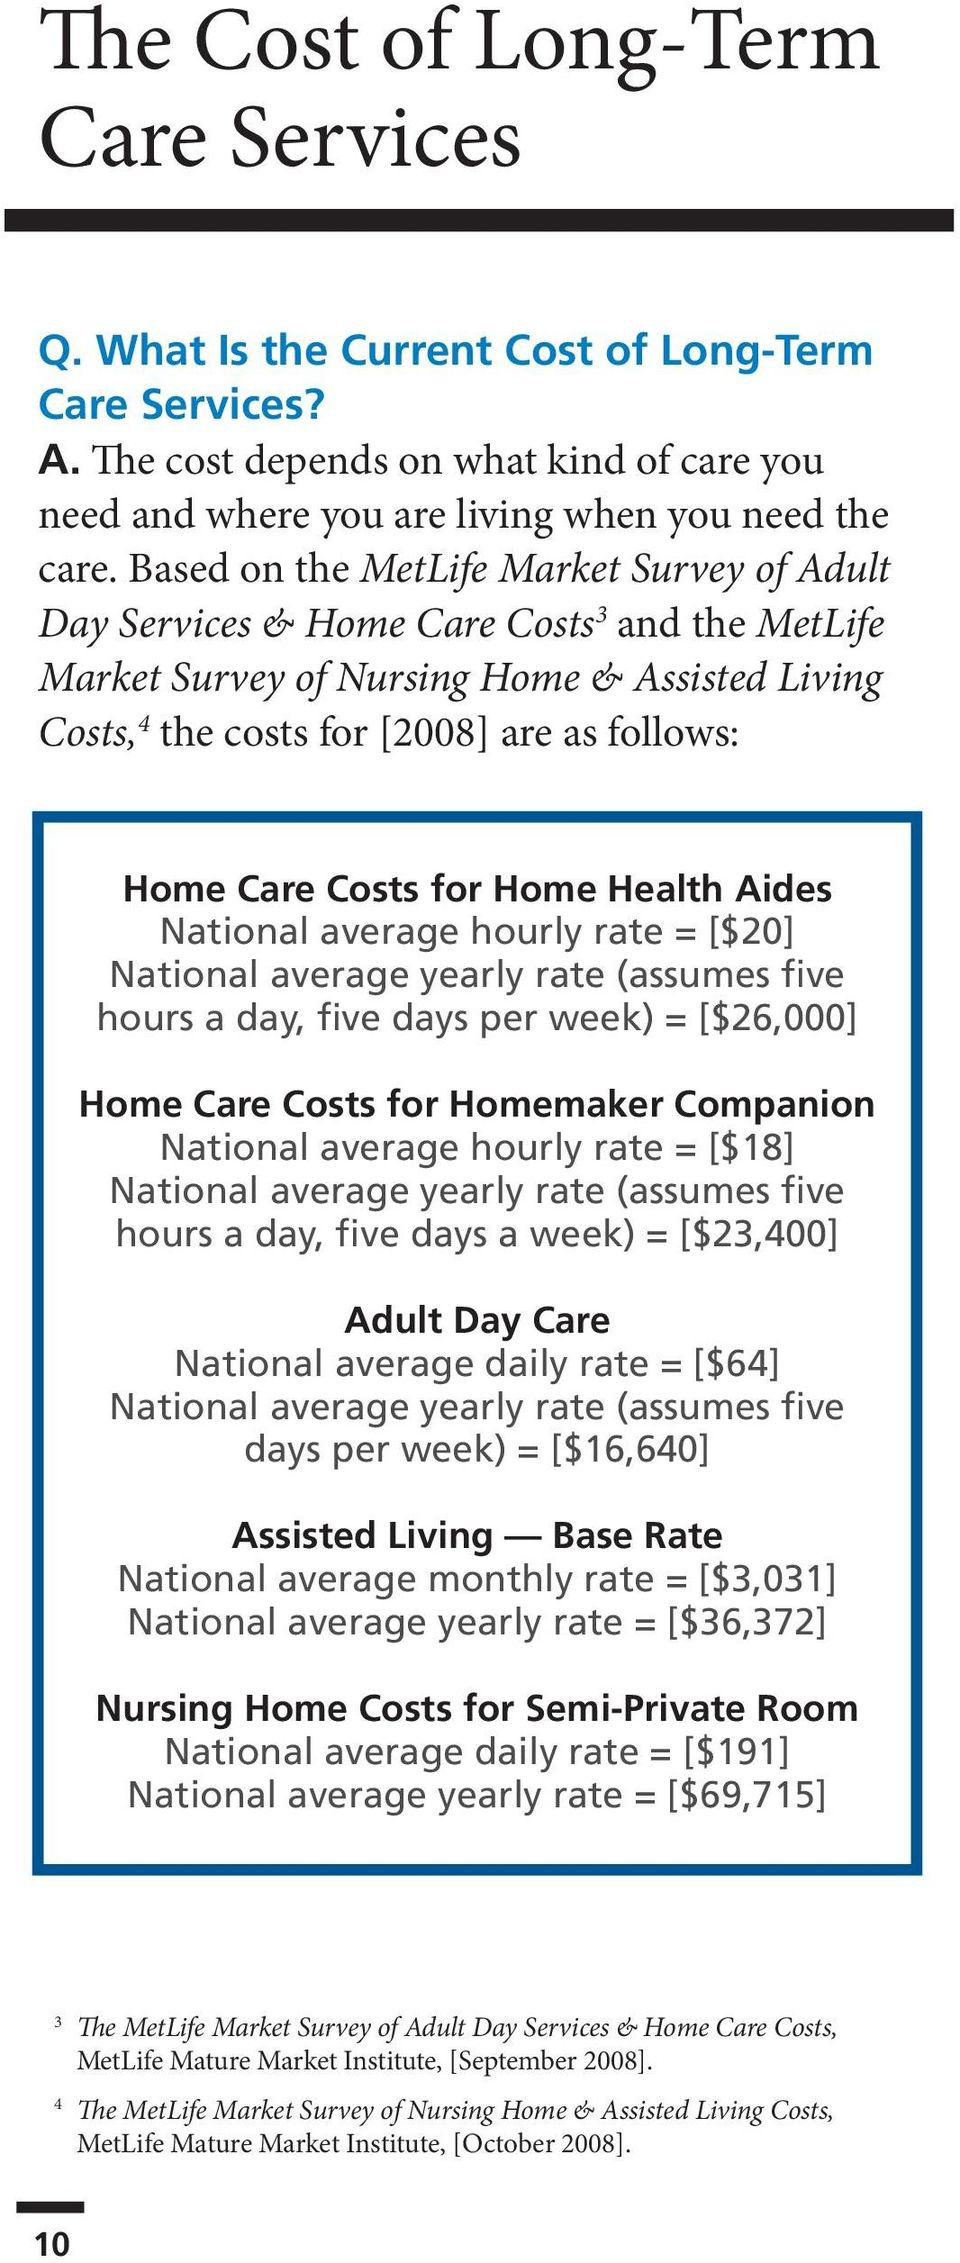 Costs for Home Health Aides National average hourly rate = [$20] National average yearly rate (assumes five hours a day, five days per week) = [$26,000] Home Care Costs for Homemaker Companion